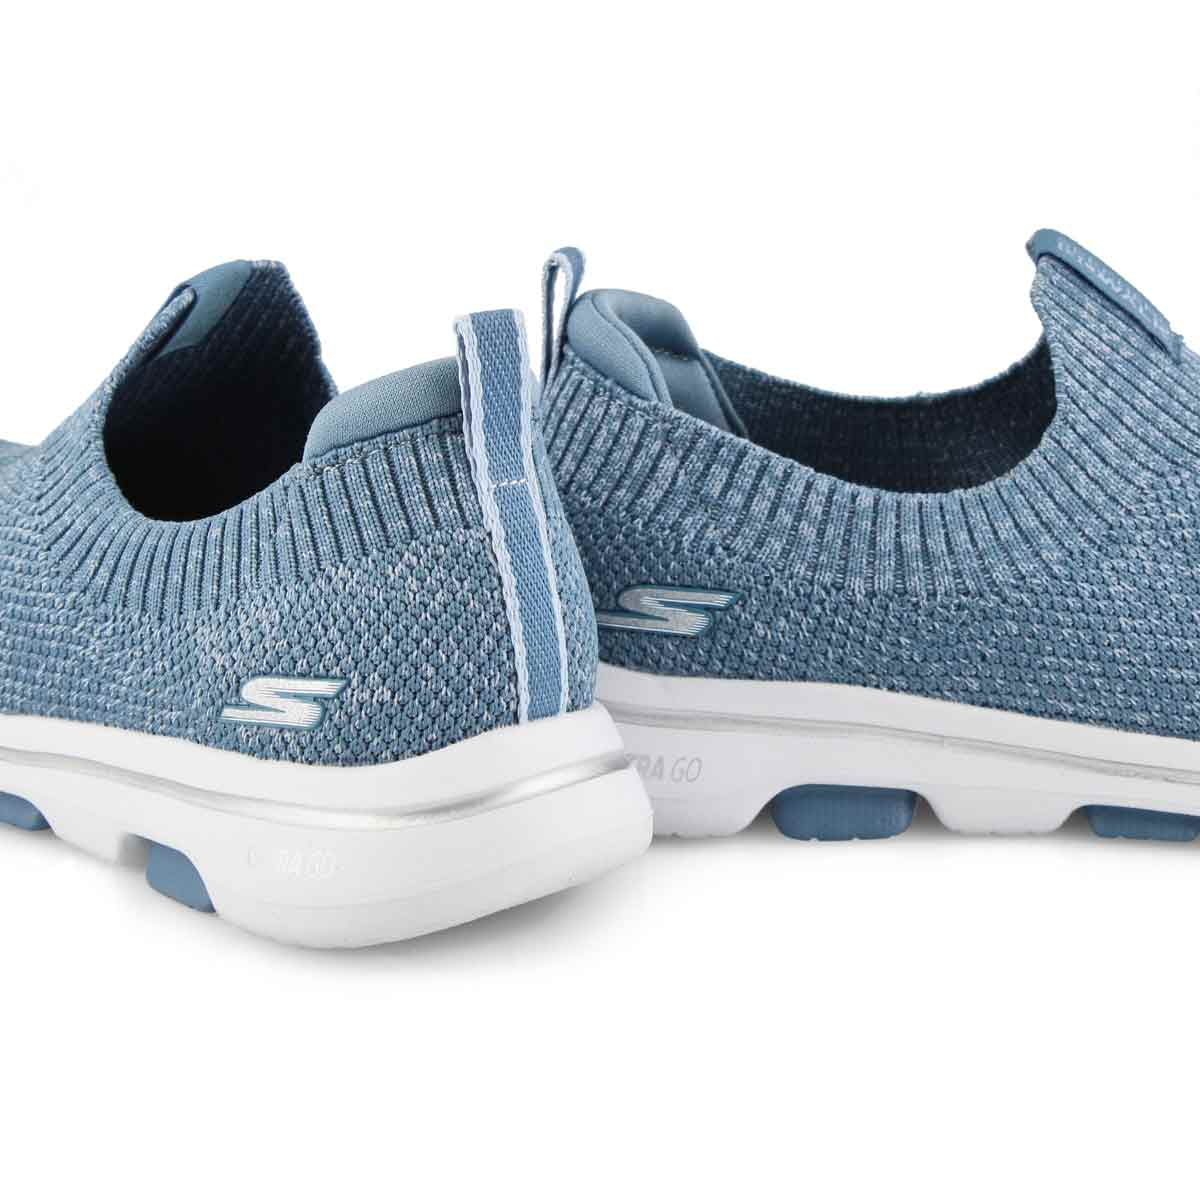 Lds GOwalk 5 Trendy blue slip on shoe